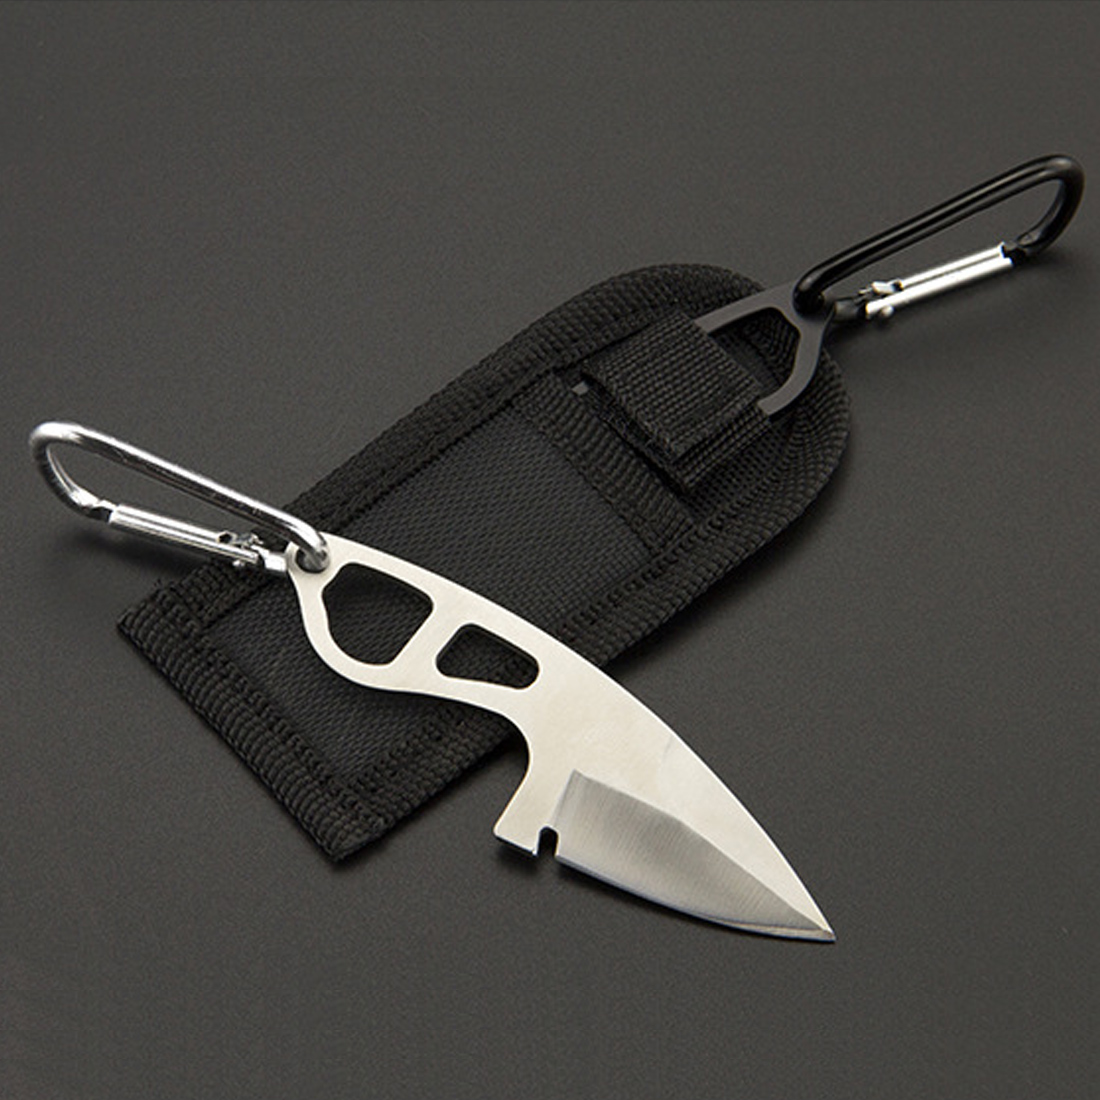 Mini Pocket Knifes Rescue Outdoor Camping Tool Tactical Hunting Survival Camping Portable Self-Defense Knife EDC Tools